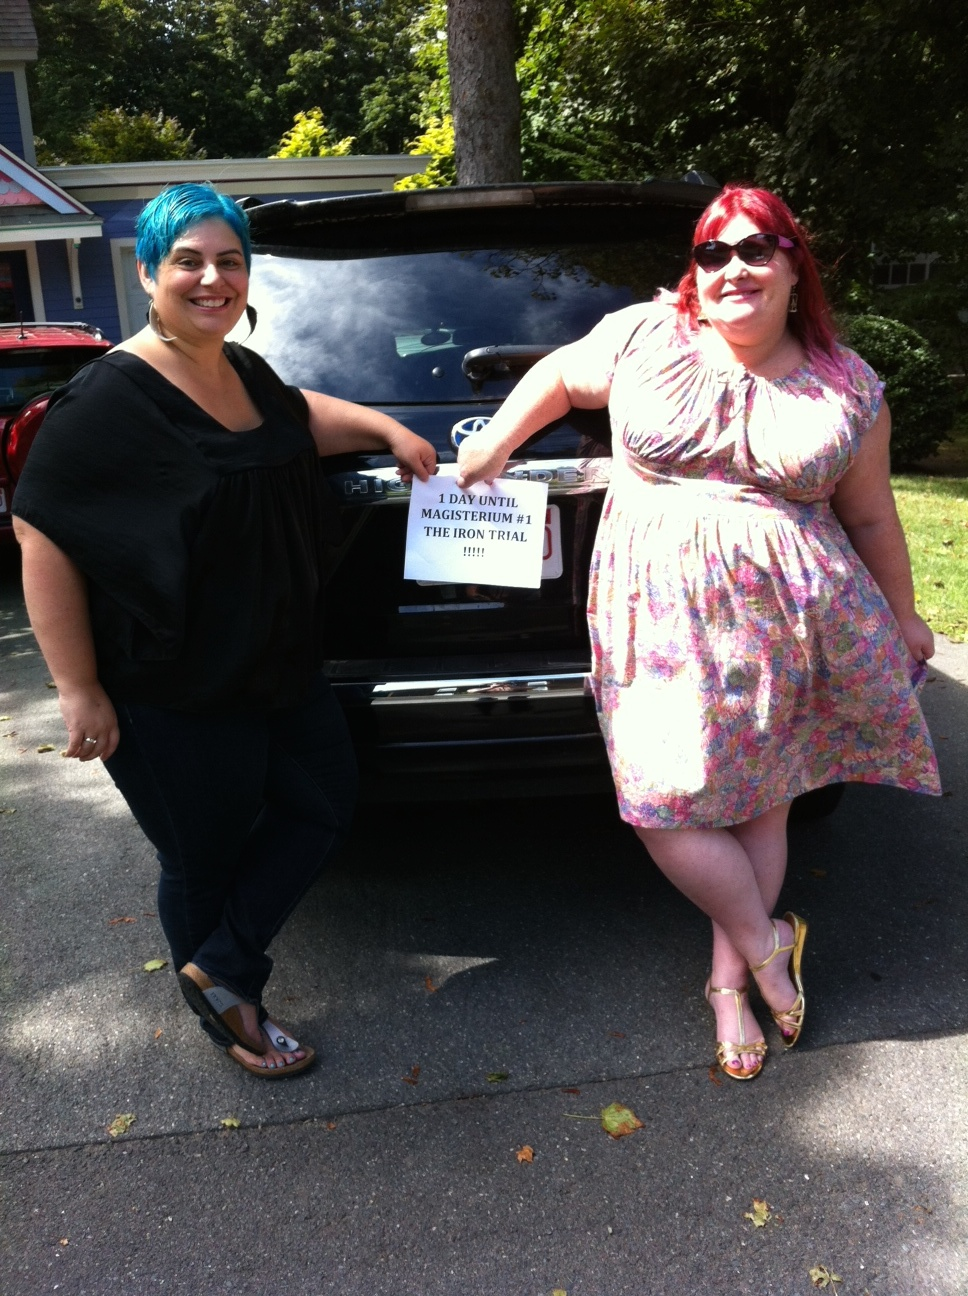 hollyblack: COUNTDOWN COMPLETE: One day remains before The Iron Trial is out! In fact, mere hours remain! Here's Cassie and I getting ready to road trip to New York for our launch event at Books of Wonder tomorrow!!